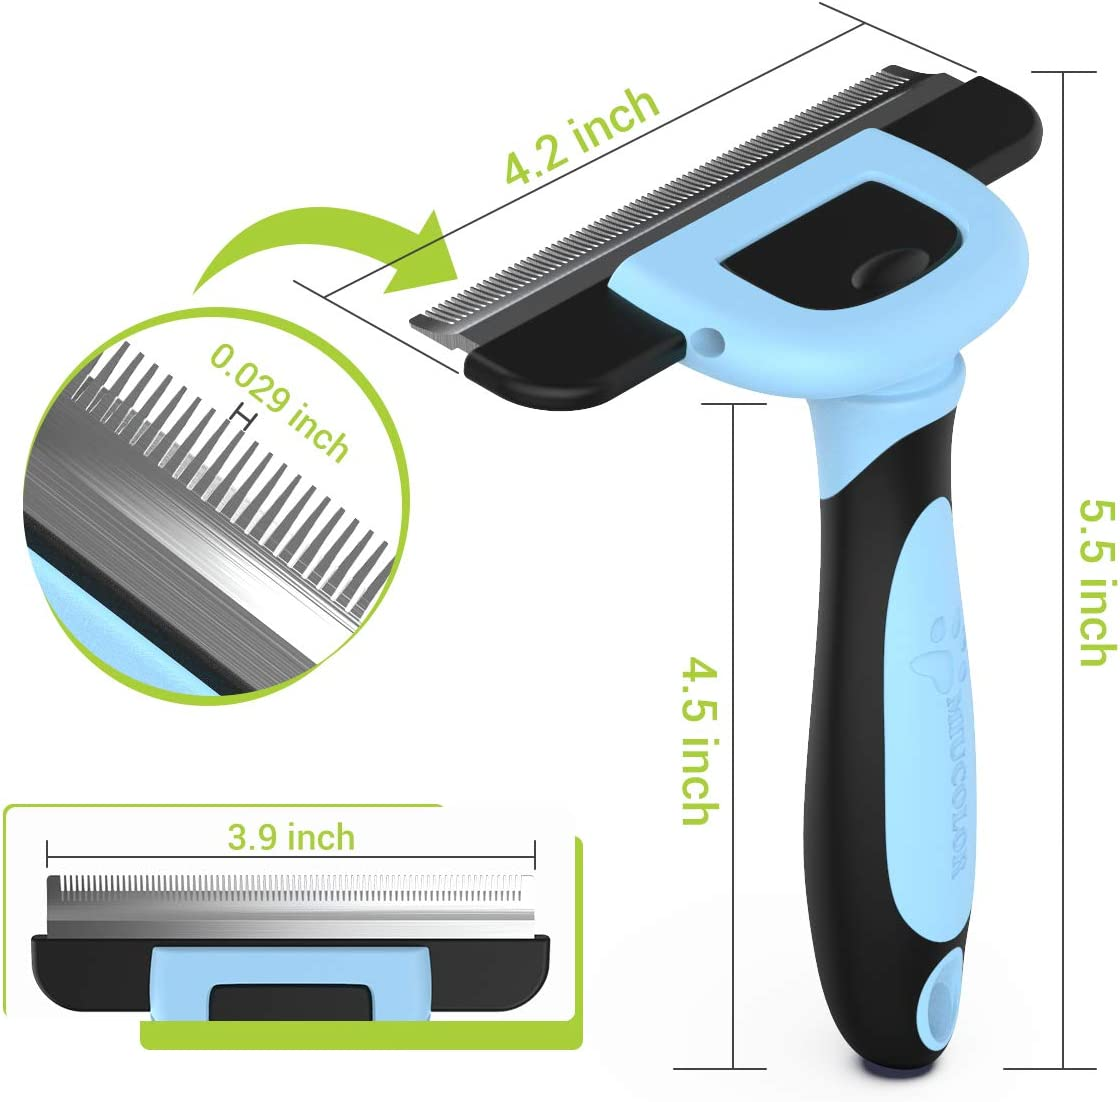 MIU COLOR Pet Deshedding Brush, Professional Grooming Tool, Effectively Reduces Shedding by up to 95% for Short Medium and Long Pet Hair Blue